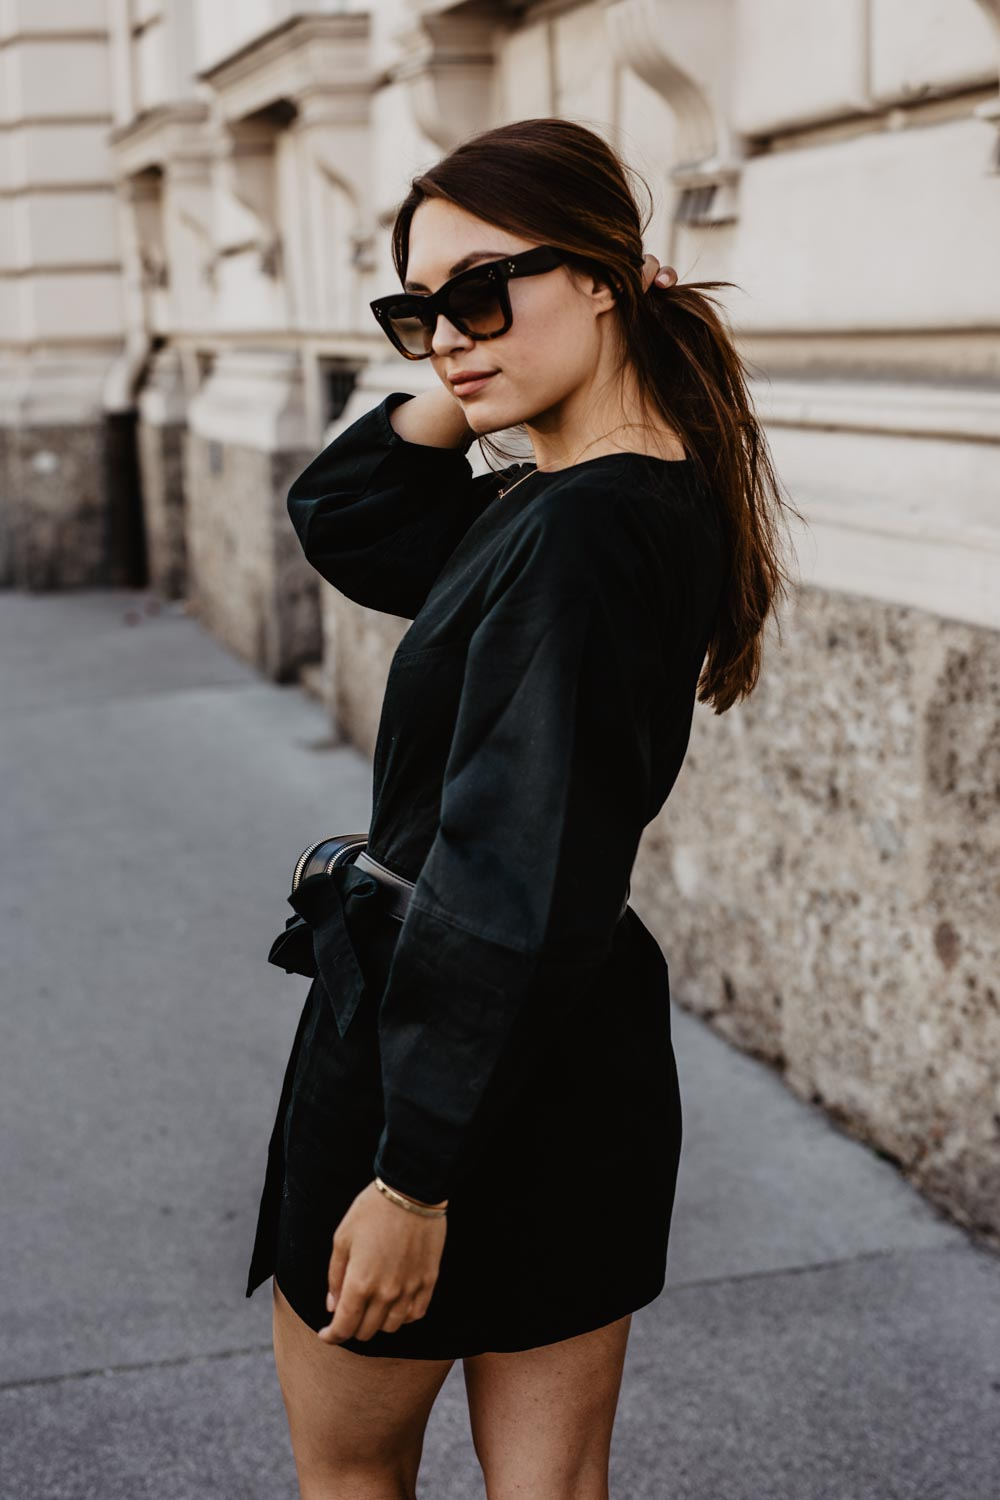 Outfit: The New Black | Aigner Diadora Belt Bag, Castaner Chiara Wedge Heels, Edited Dress, Céline Sunglasses | you rock my life